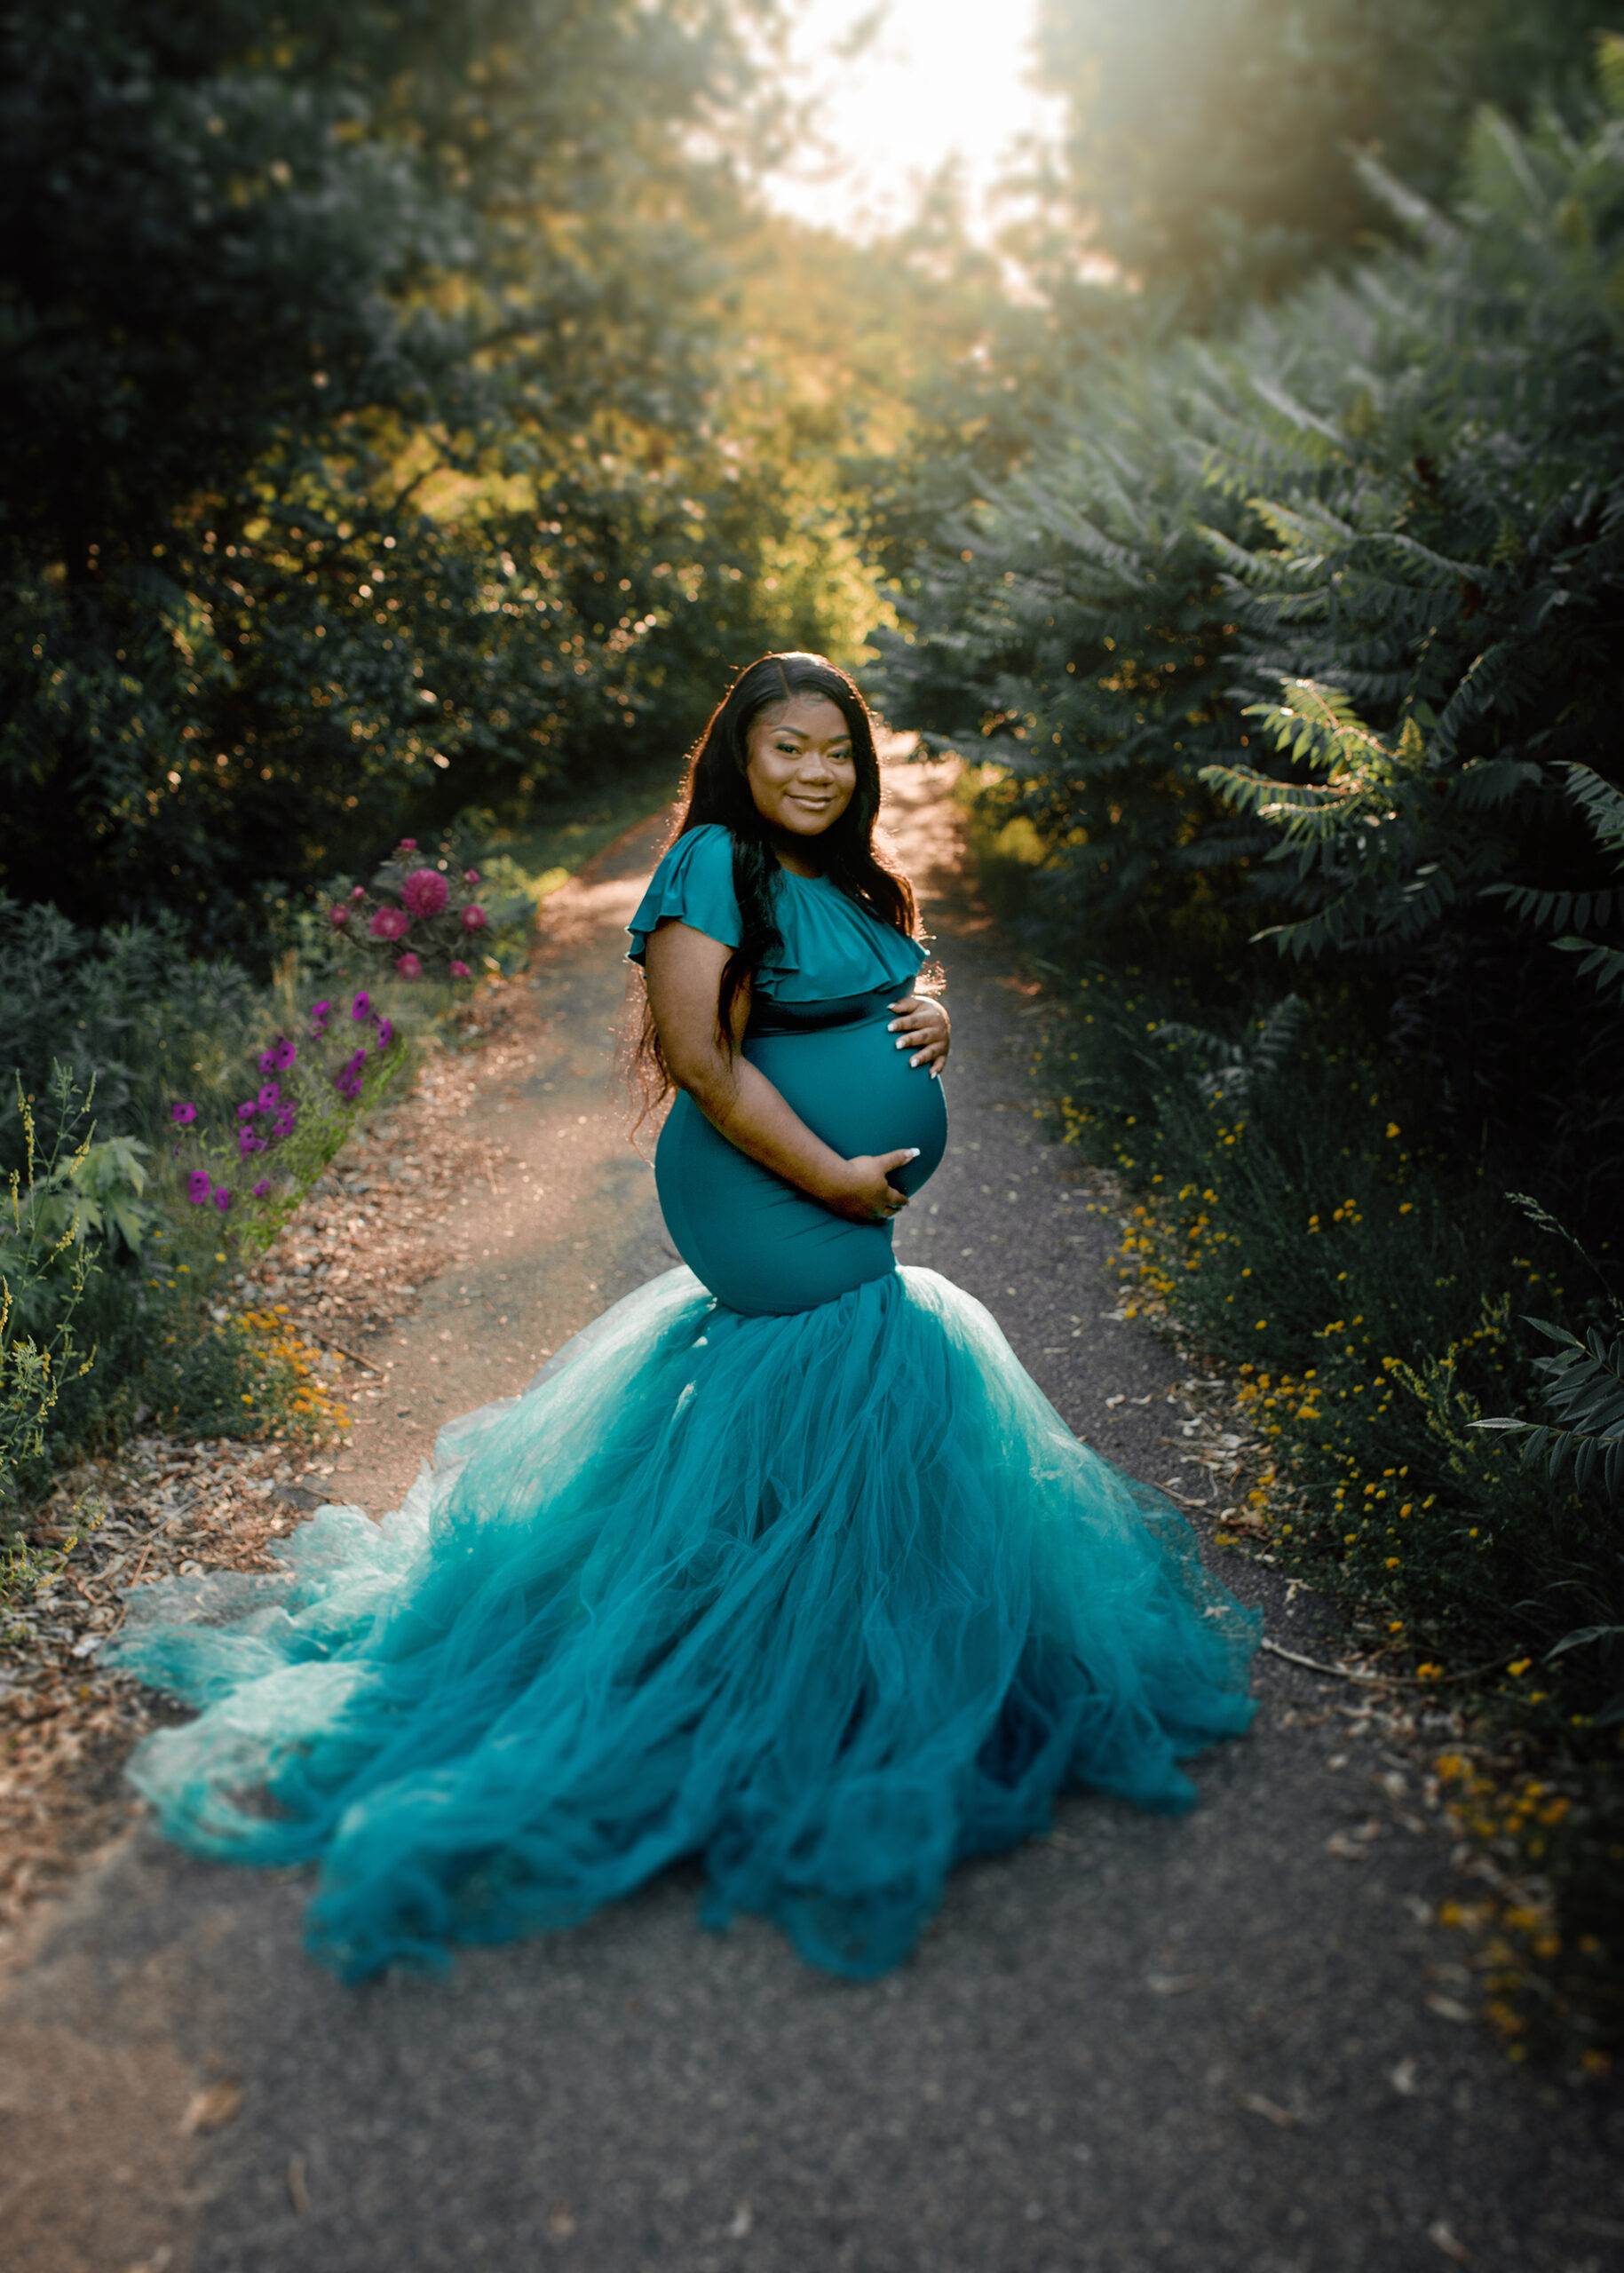 teal tulle mermaid gown by chicaboo for maternity session in Longfellow Gardens in Minneapolis MN